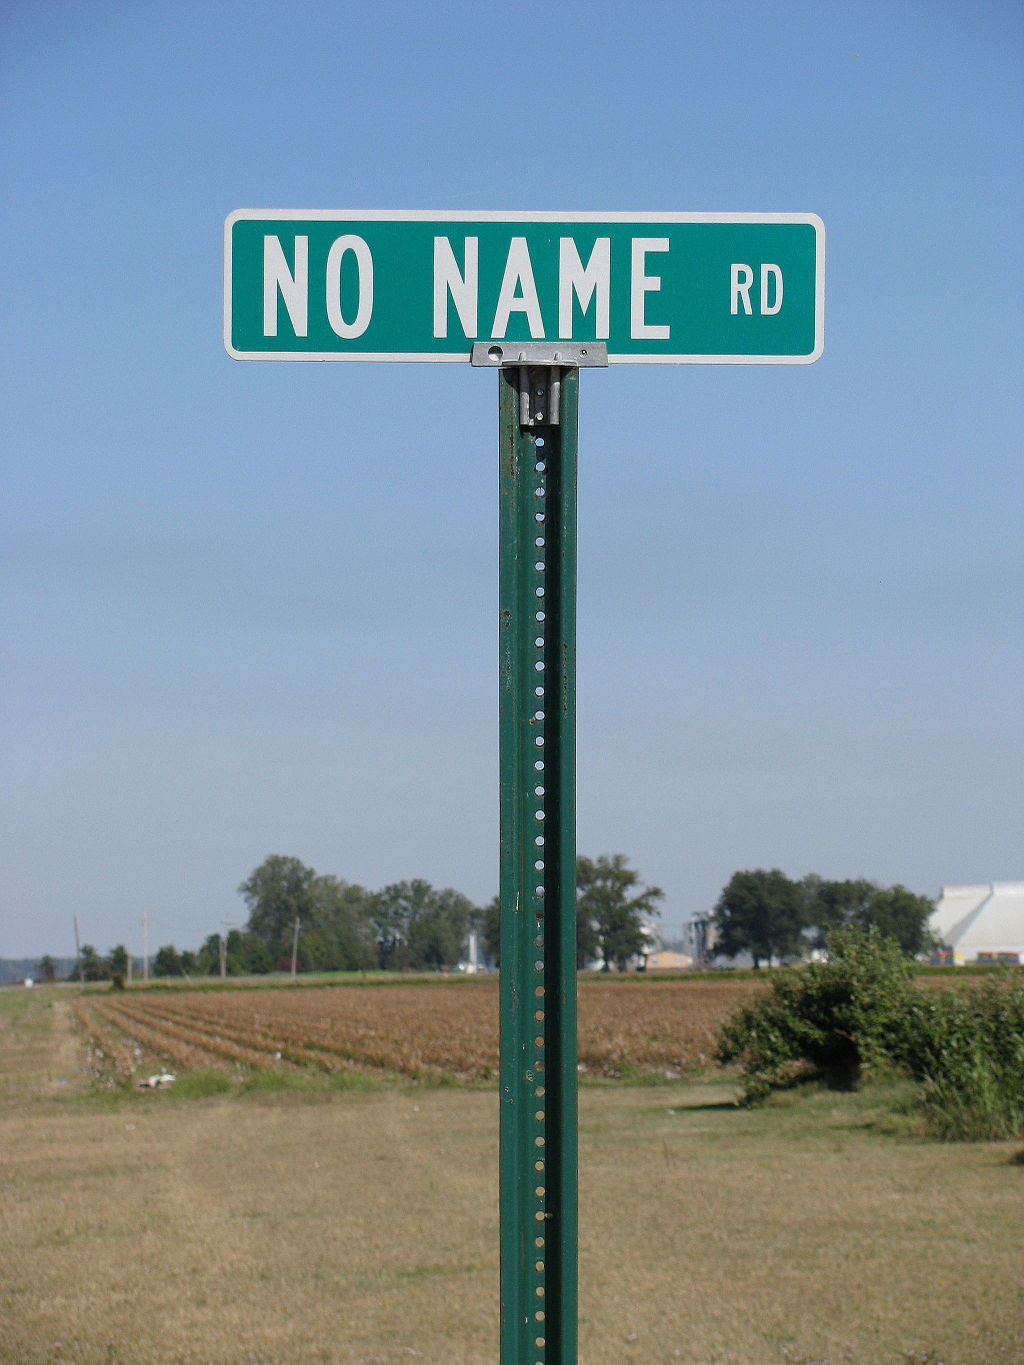 No Name Road (2988366432)